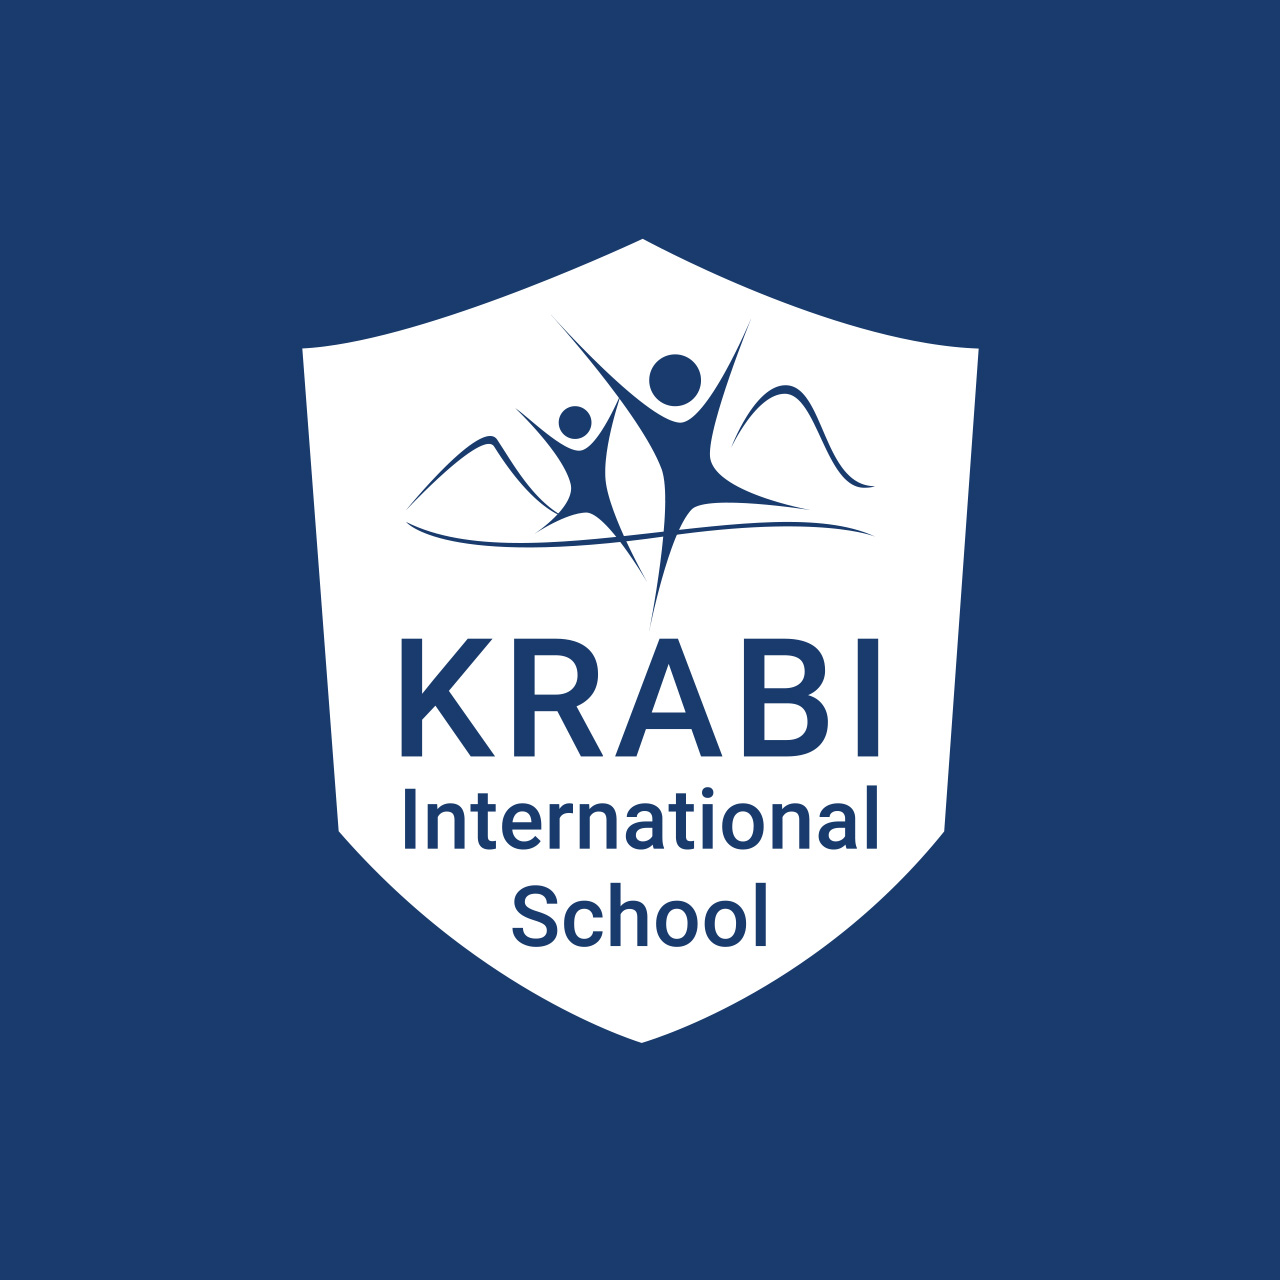 Krabi International School Logo